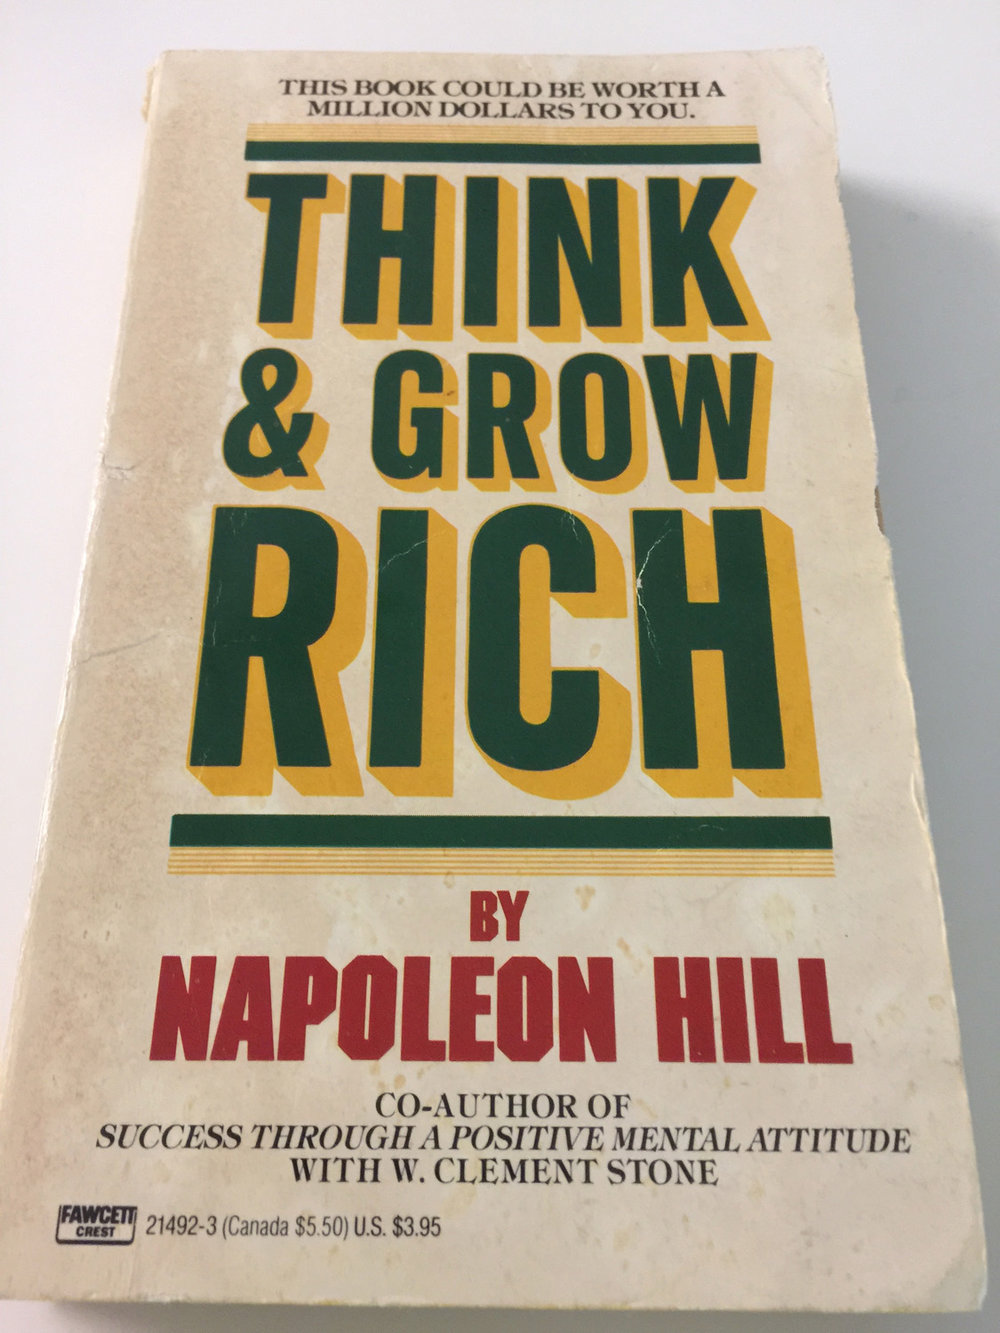 My very first copy of Think & Grow Rich